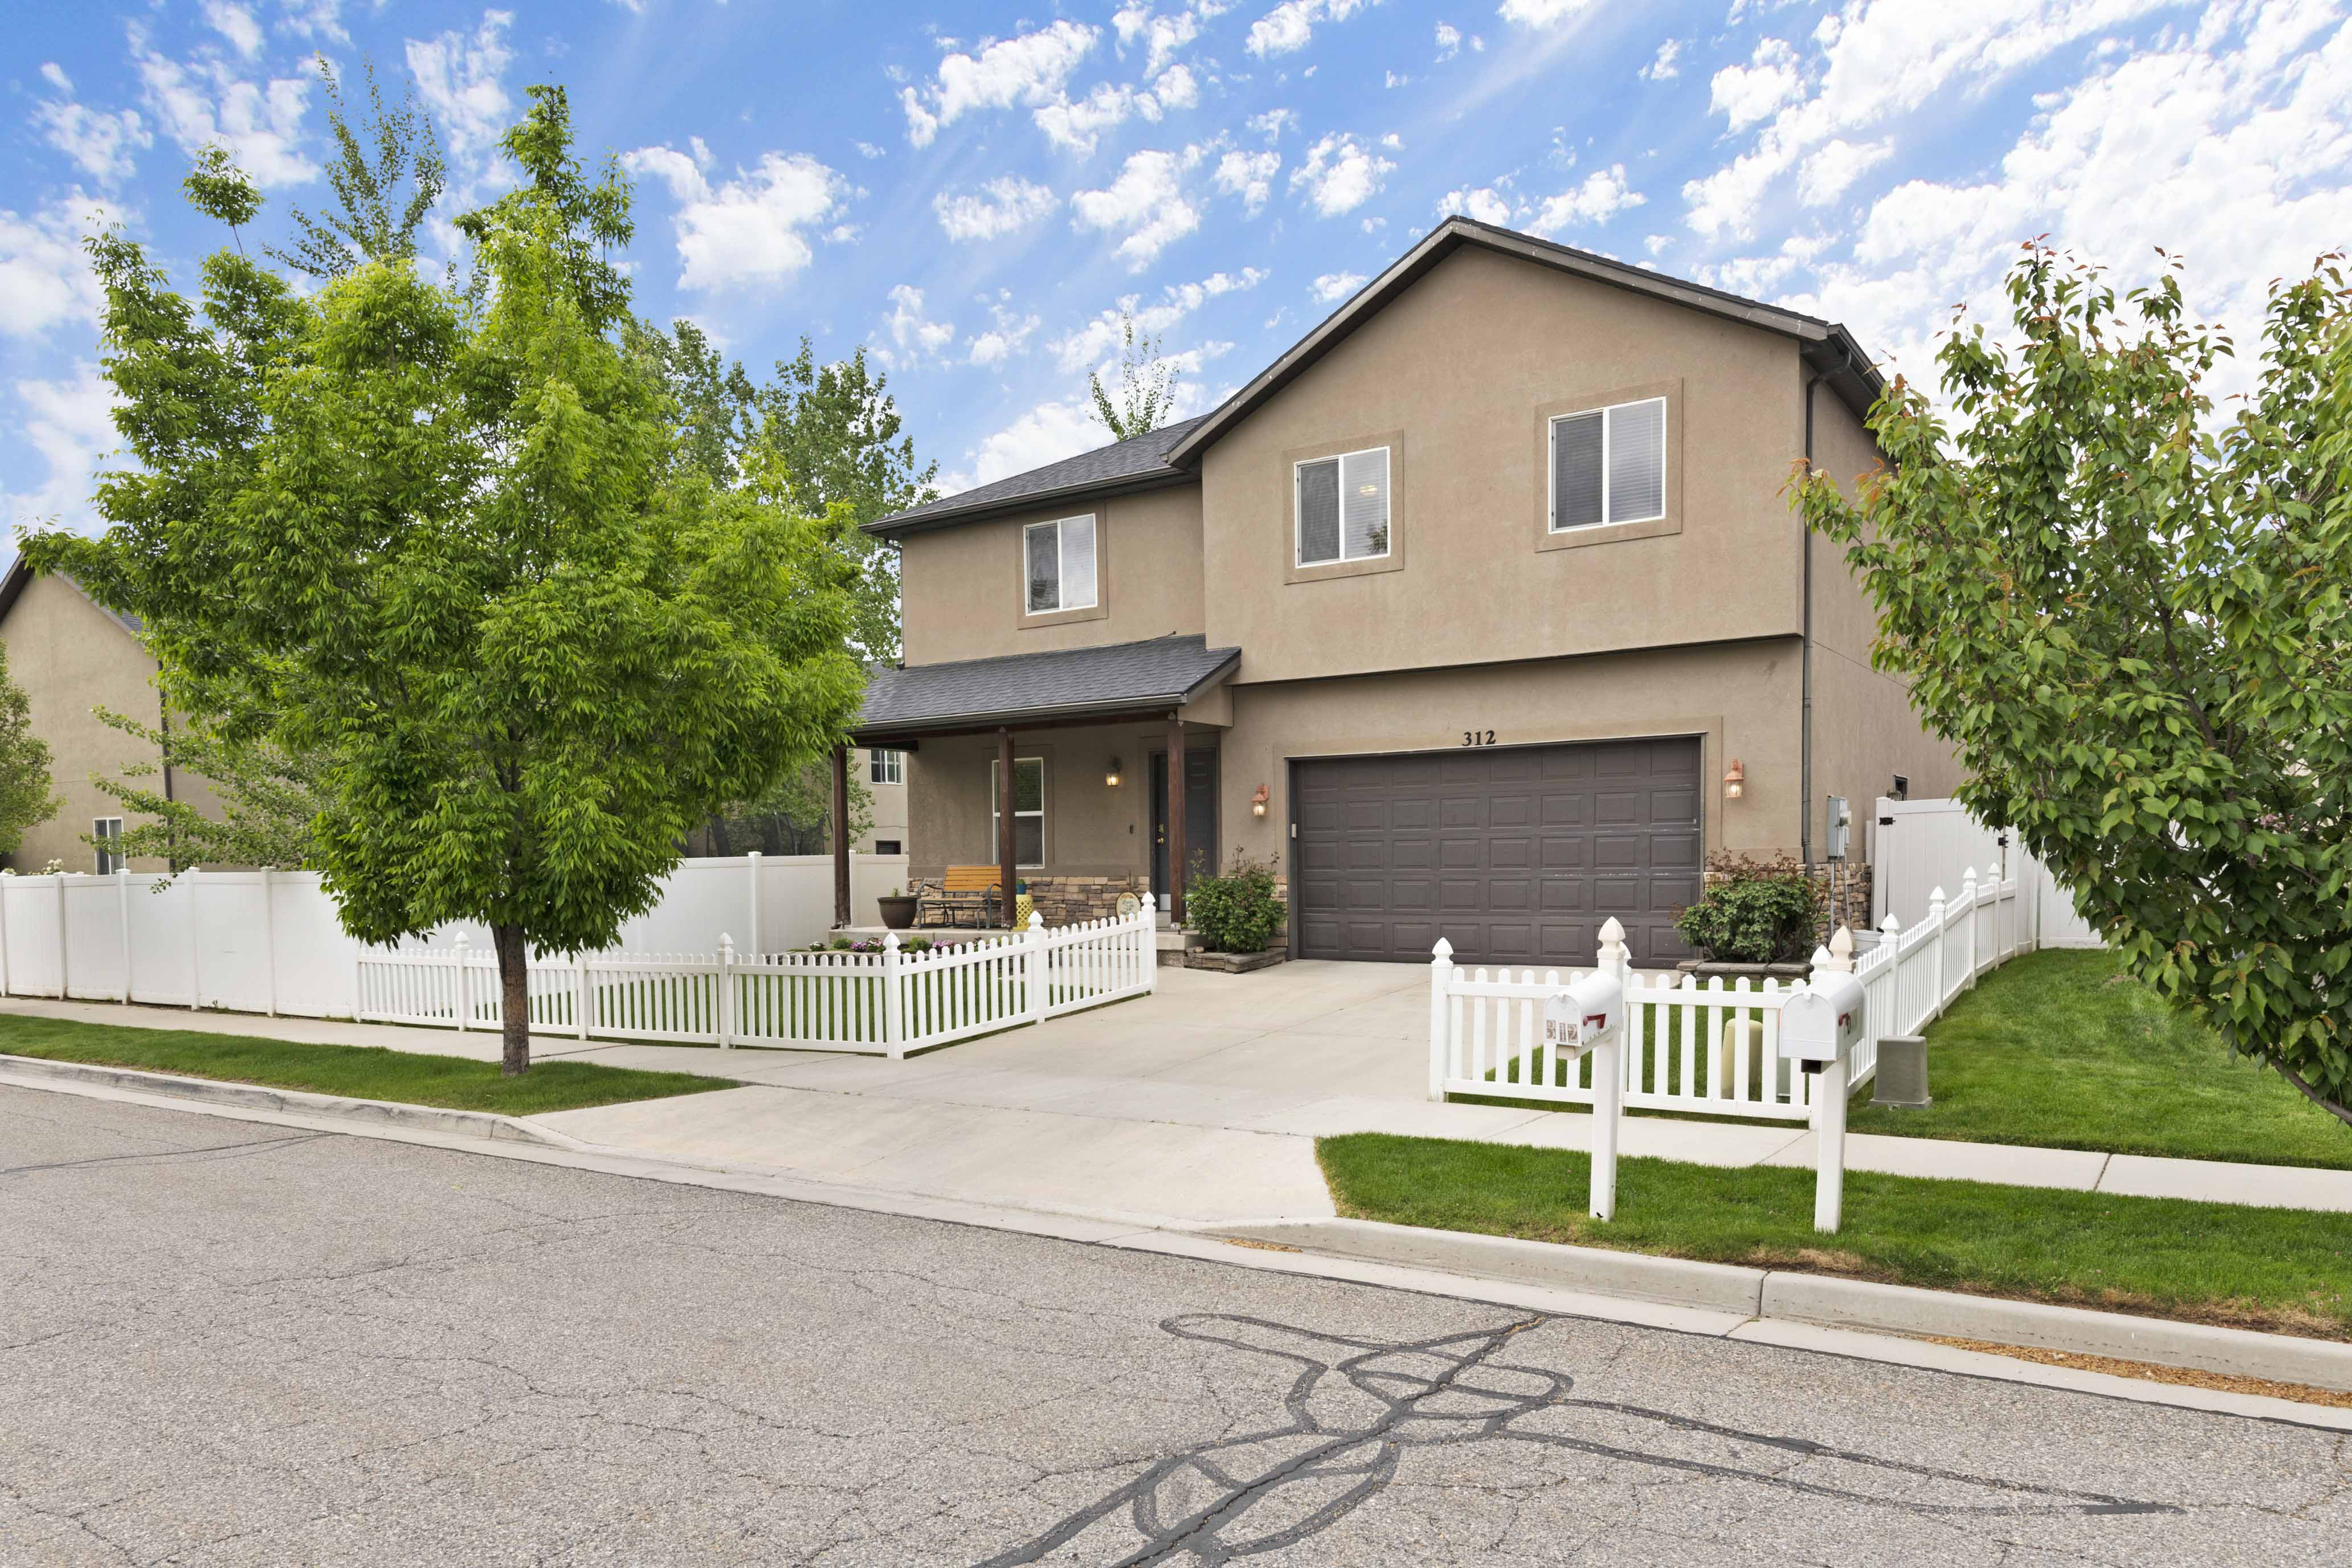 4 Tips Salt Lake City Realtors Recommend in an Intimidating Market